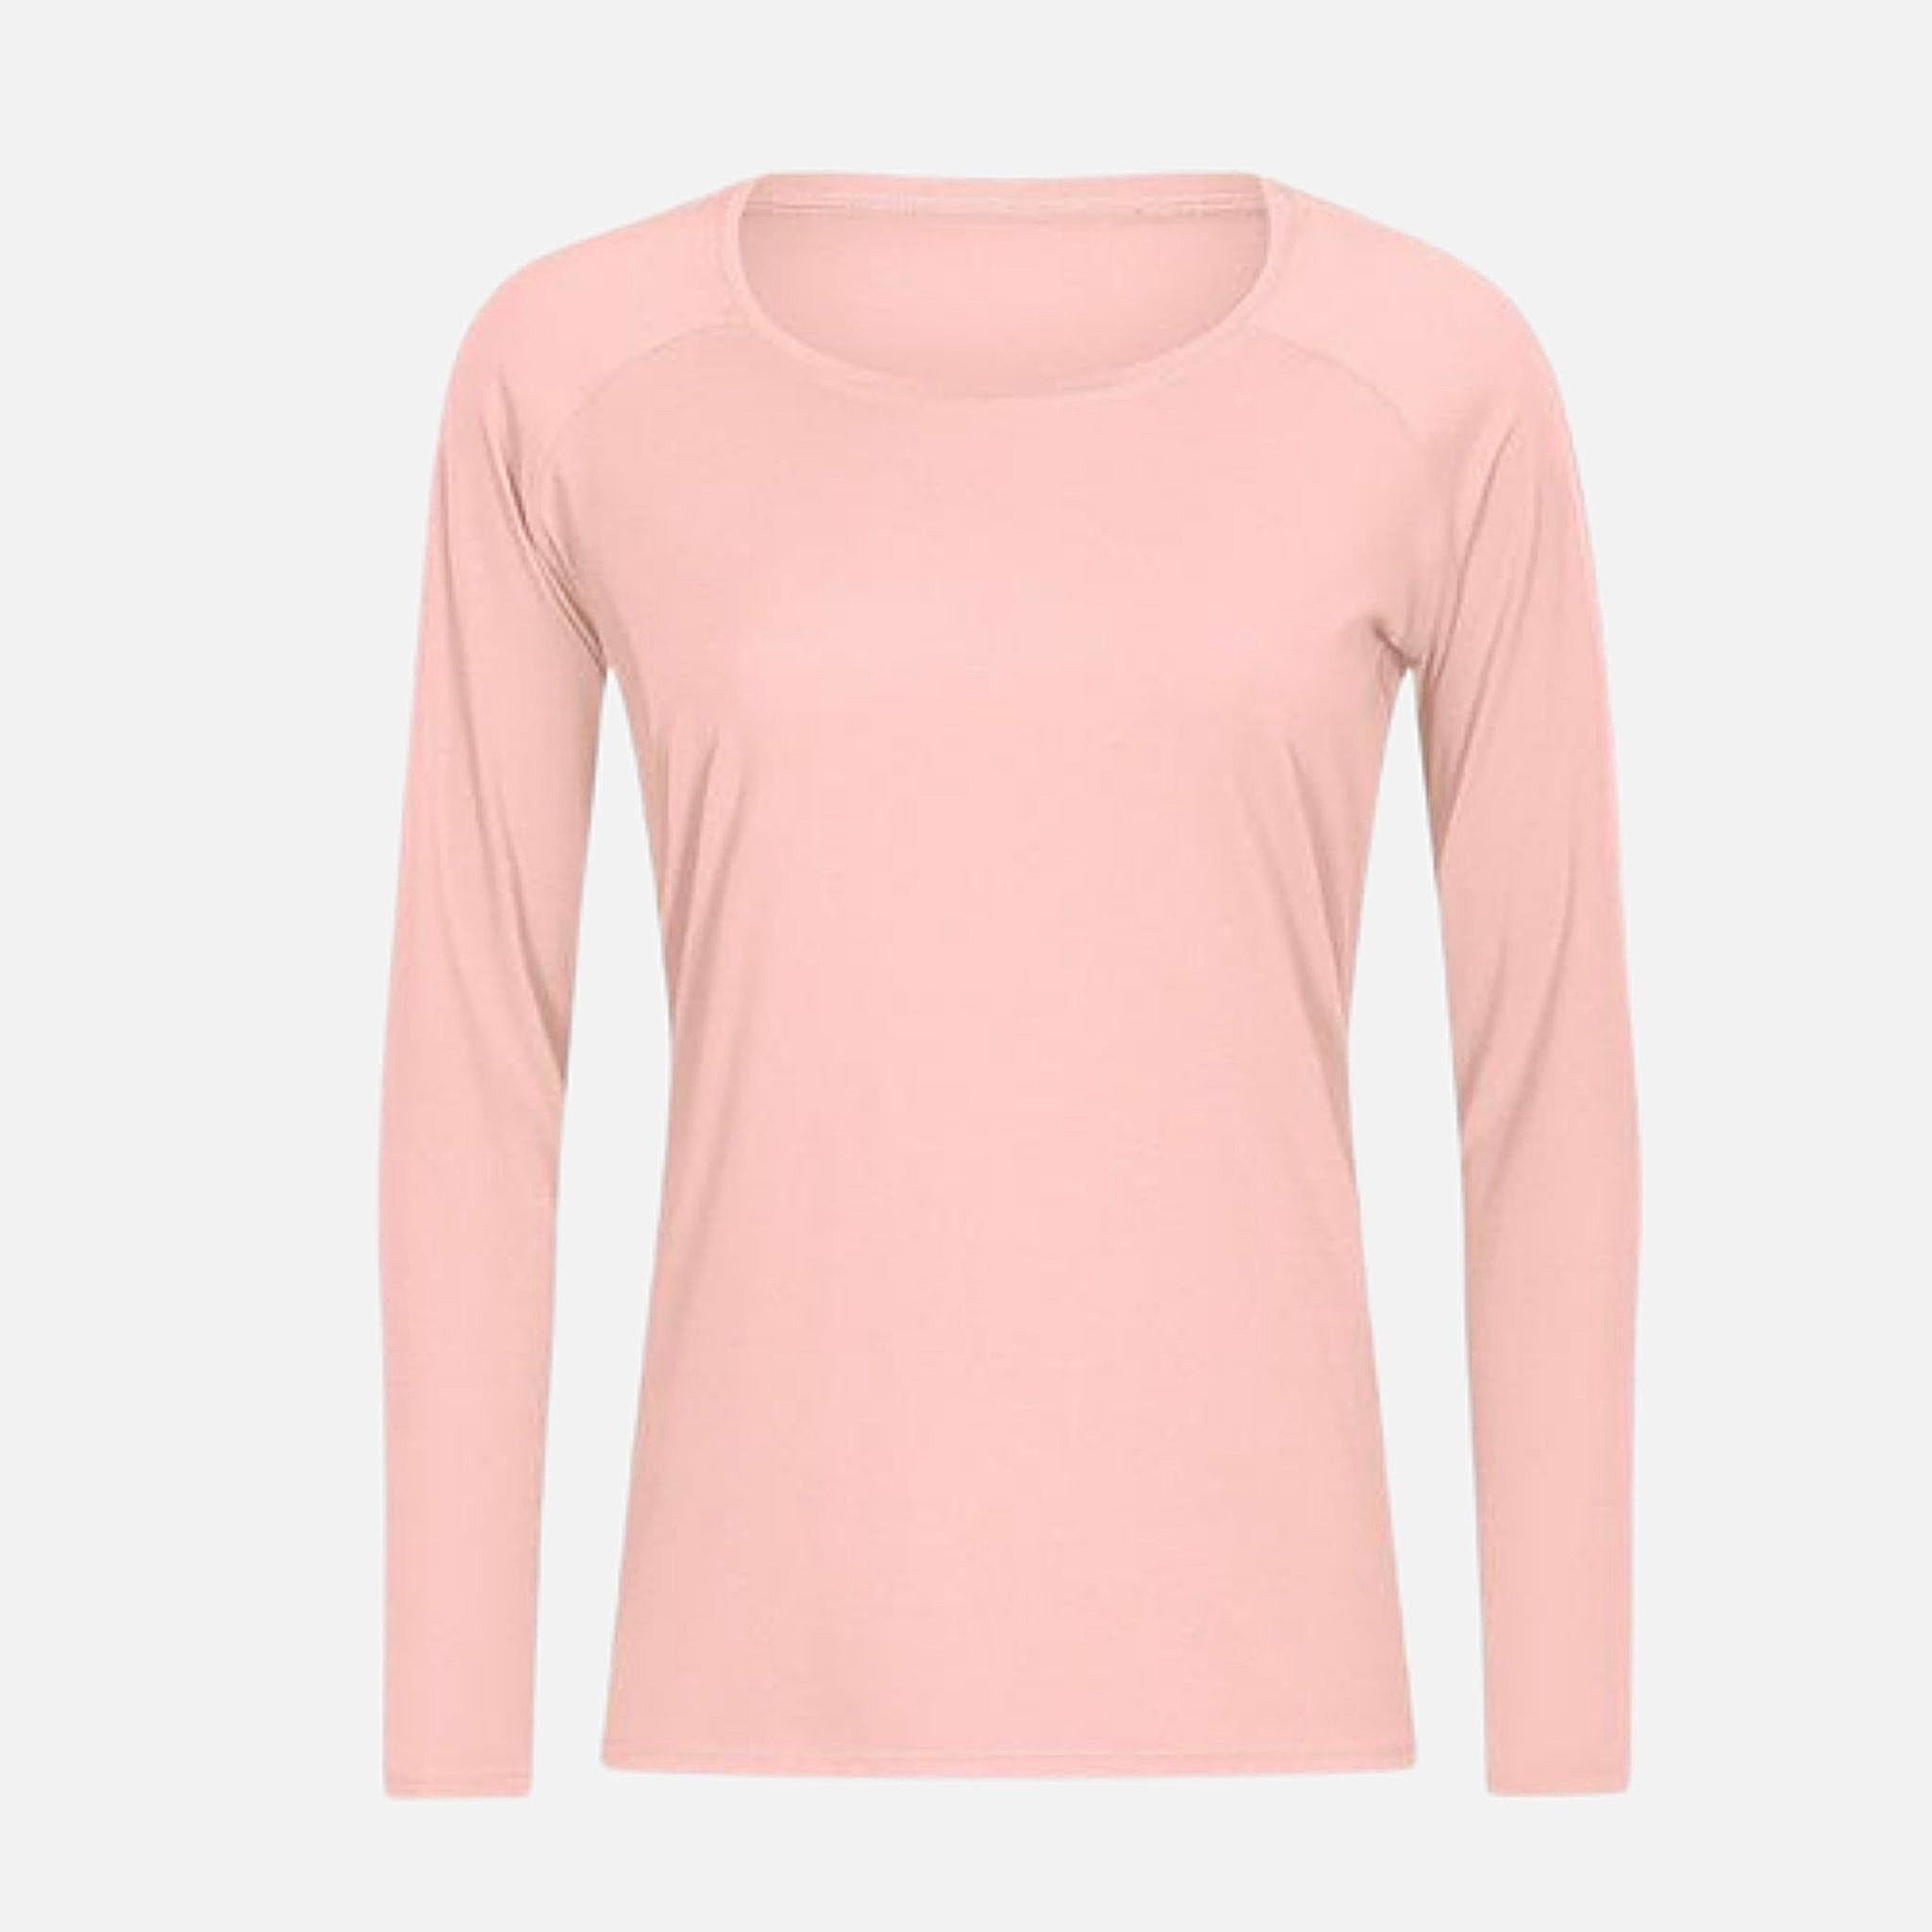 miFit QuickDry Boatneck T-Shirt     Long sleeved champagne powder color breathable lightweight loose quick dry naked-feel fabric Skin friendly Workout Yoga Running Sport Tops Women's T-Shirts Sportswear Style Trend